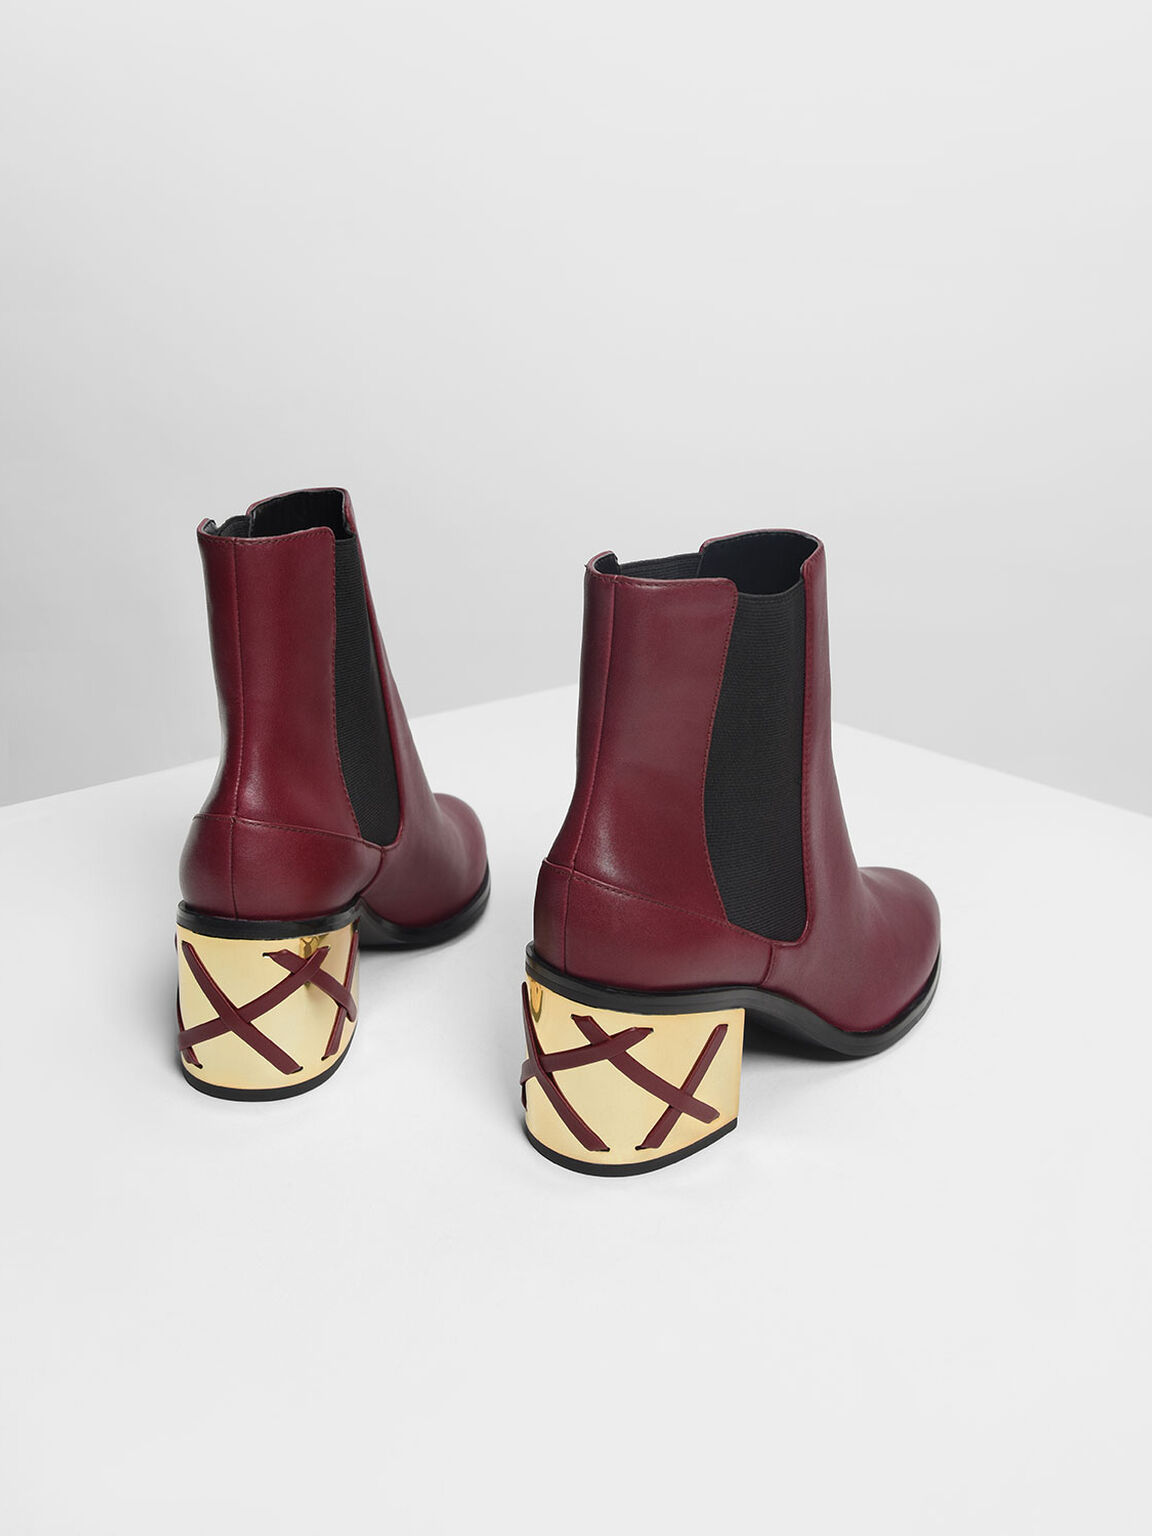 Weave Detail Chrome Heel Leather Boots, Burgundy, hi-res